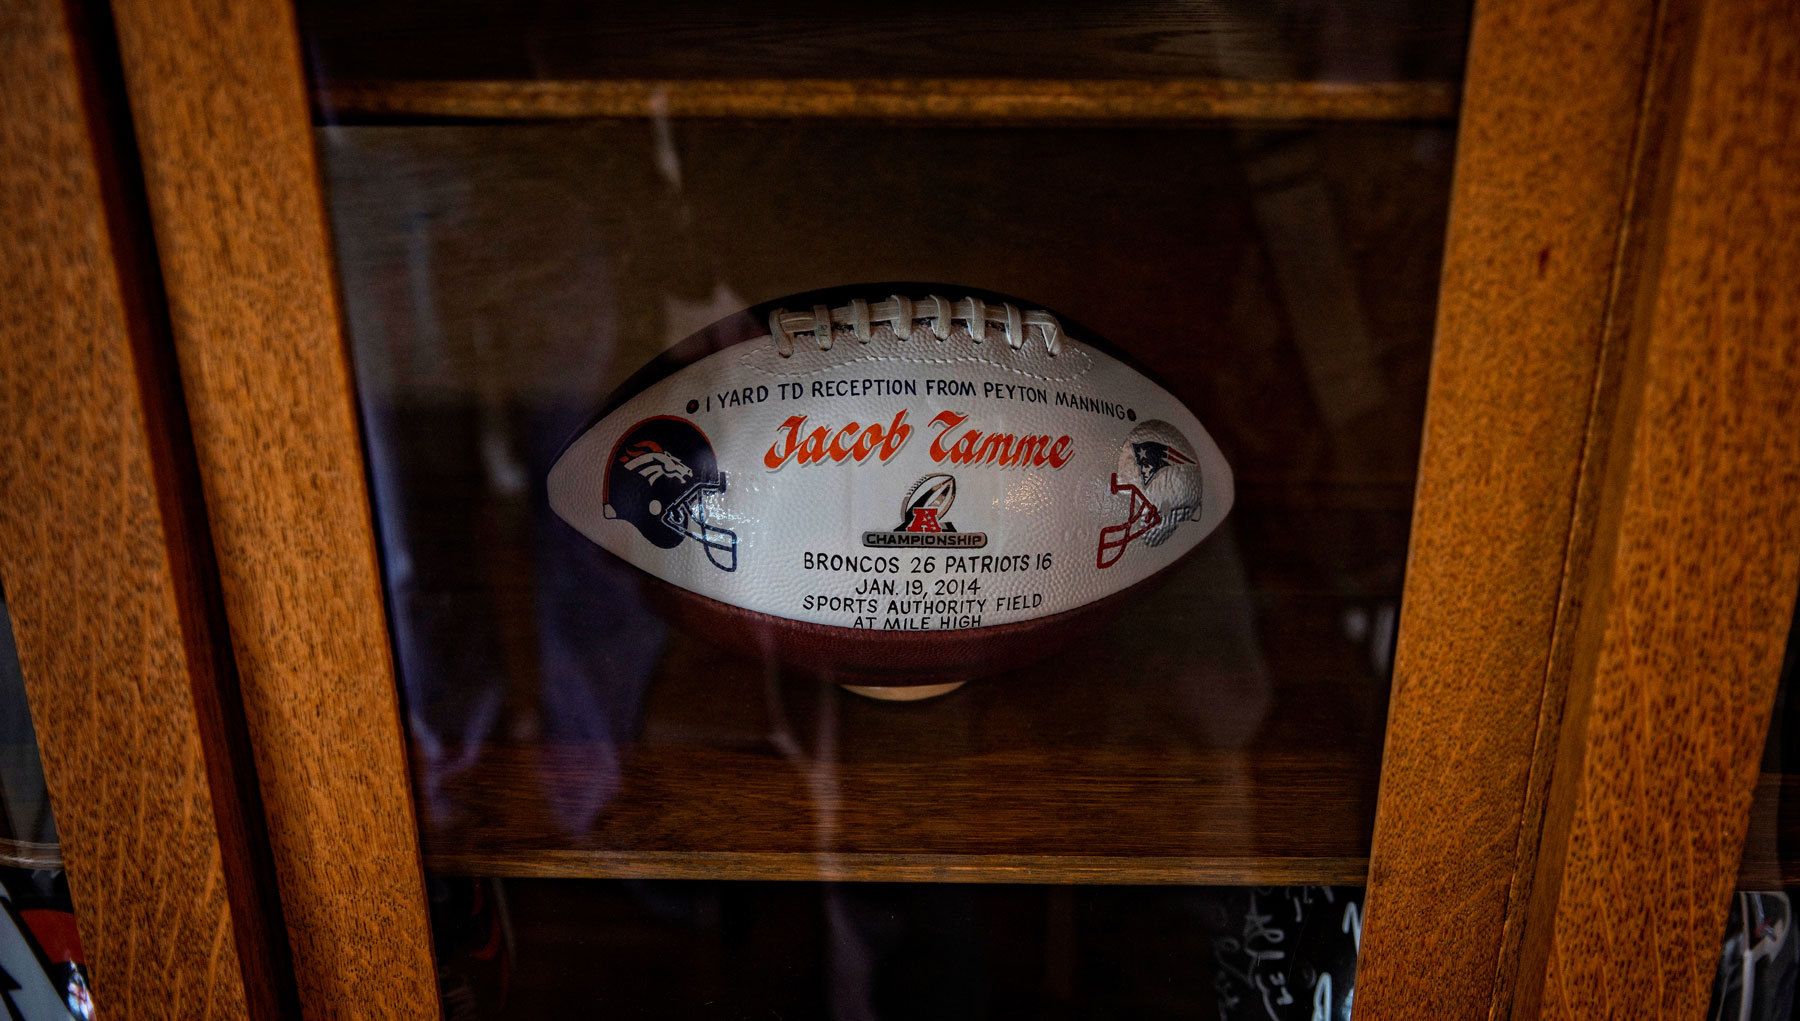 "A special football is displayed in a case that says ""1 yard TD reception from Peyton Manning. Jacob Tamme. Broncos 26 Patriots 15 Jan. 19 2014. Sports Authority Field at Mile High"""